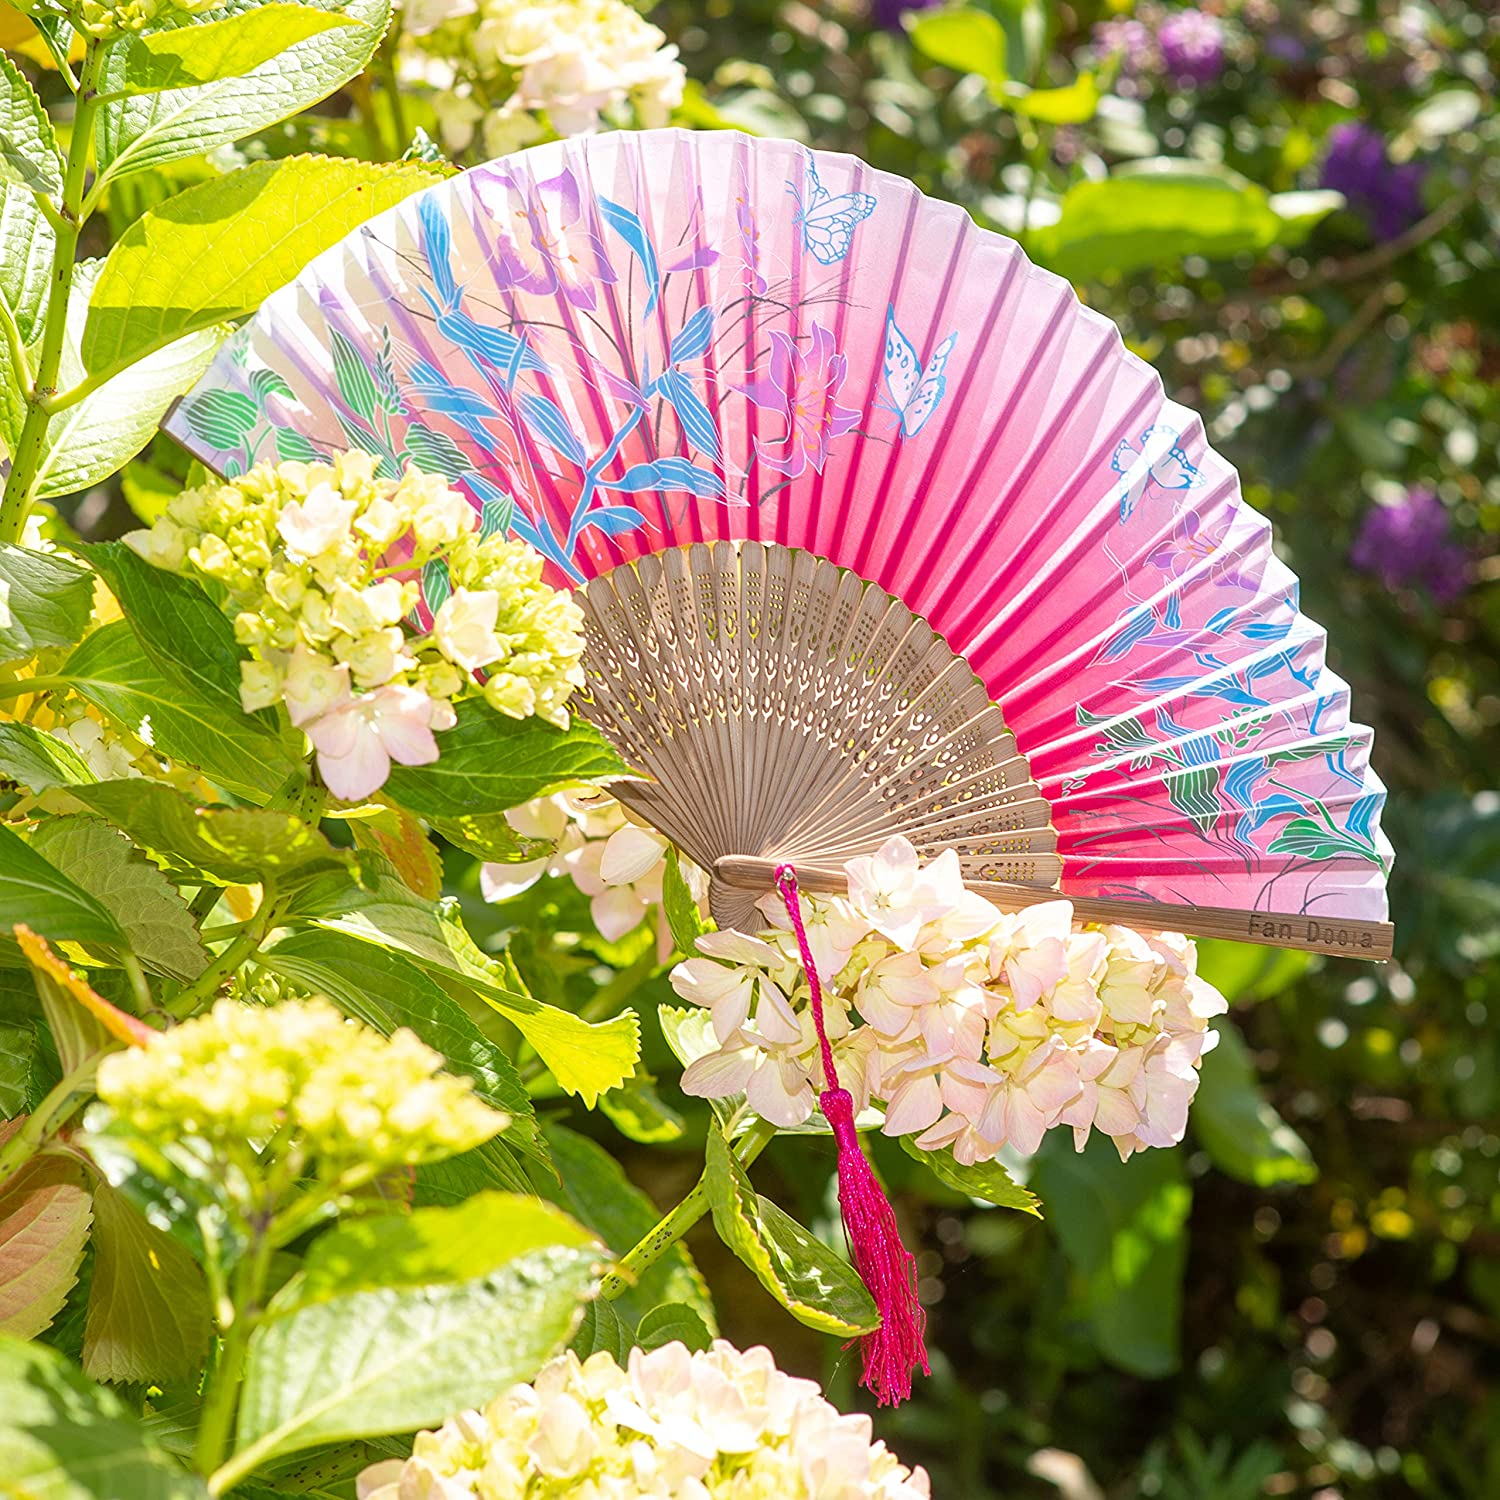 Comes in Gift Box with Drawstring Pouch Handheld Chinese Folding Bamboo Hand Fan by Fan Doola/™ Cerise Pink with Butterfly//Flower Design